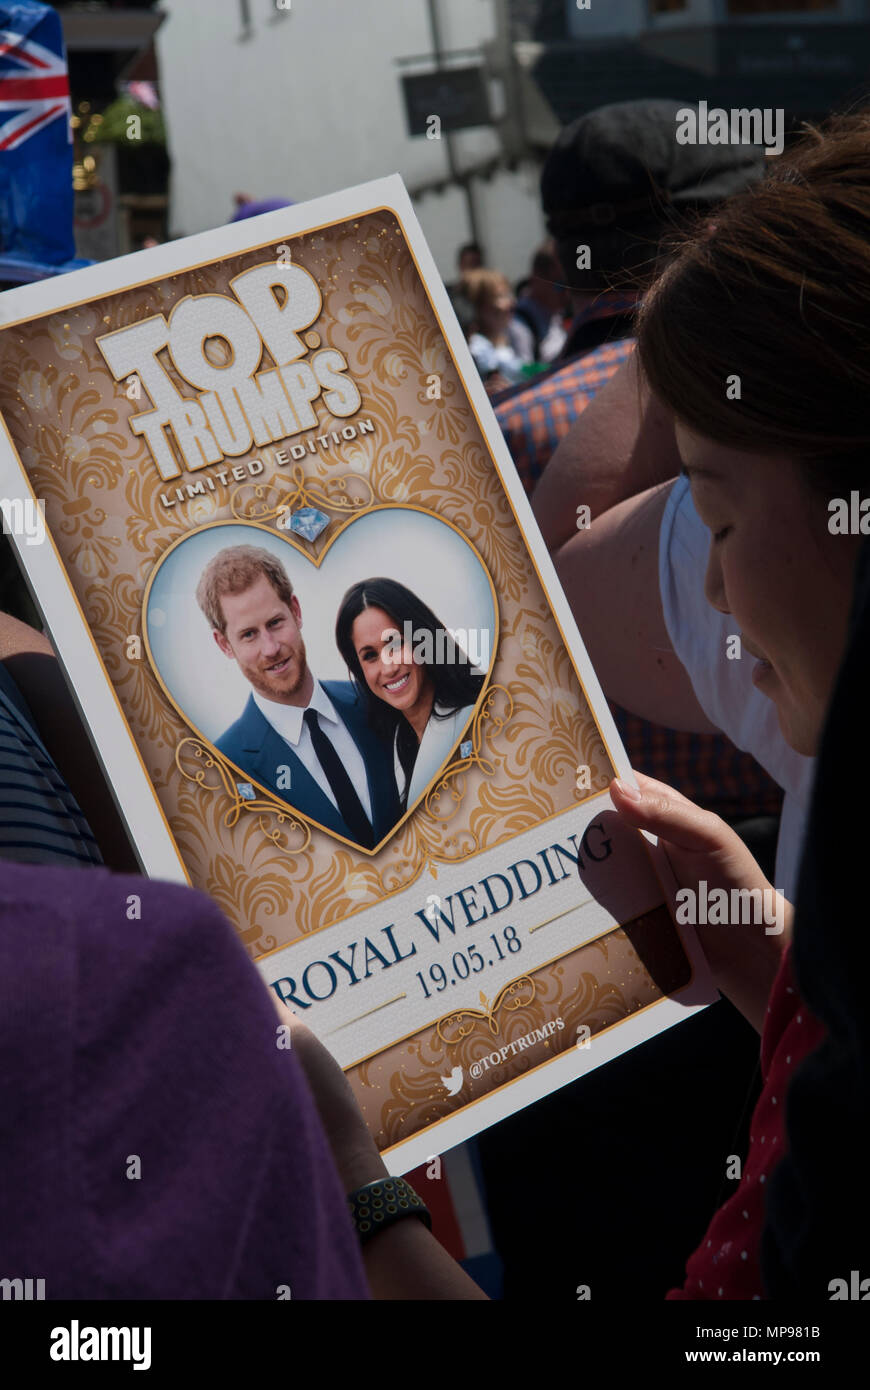 Royal wedding 19 May 2018 Prince Harry Meghan Markle  the Duke and Duchess of Sussex poster Windsor . England 1980s HOMER SYKES Stock Photo